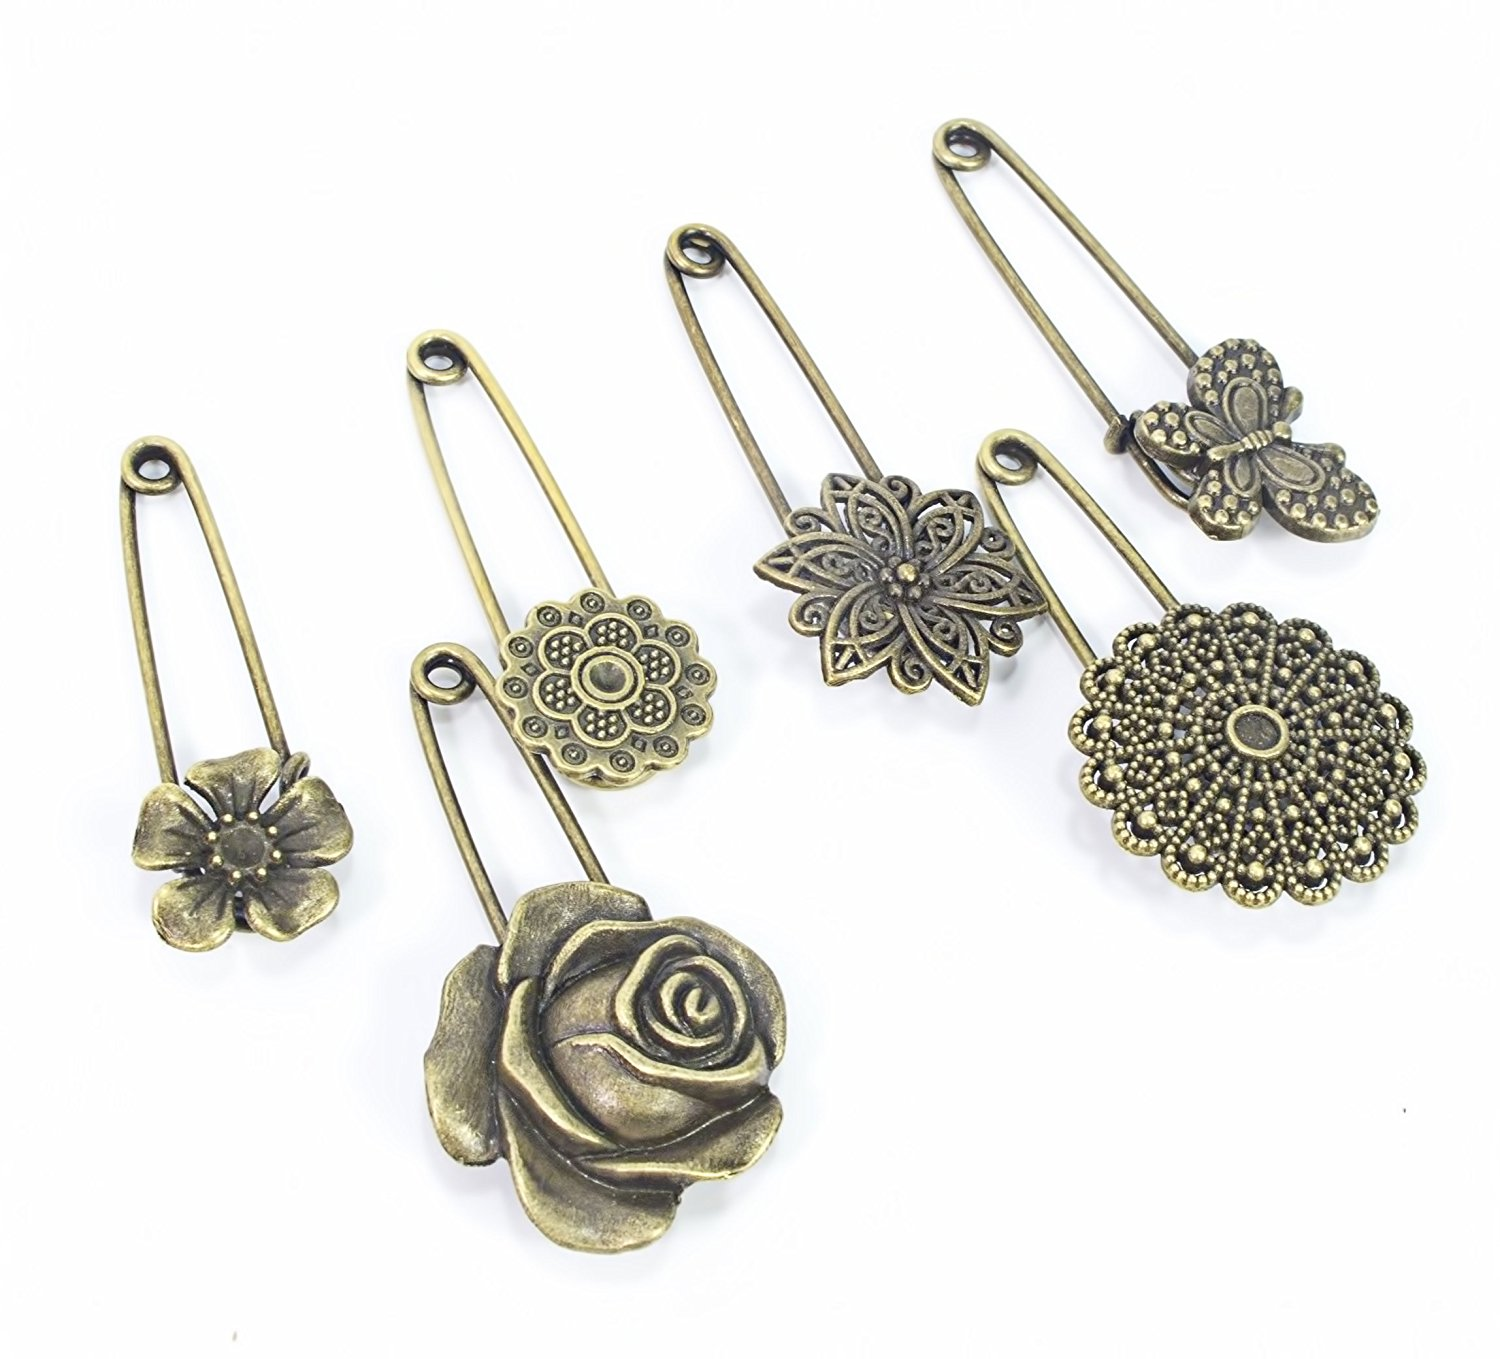 1d58fe687 Get Quotations · ALL in ONE 6pcs Assorted Bronze Vintage Brooch Pin Hijab  Pin Safety Pin